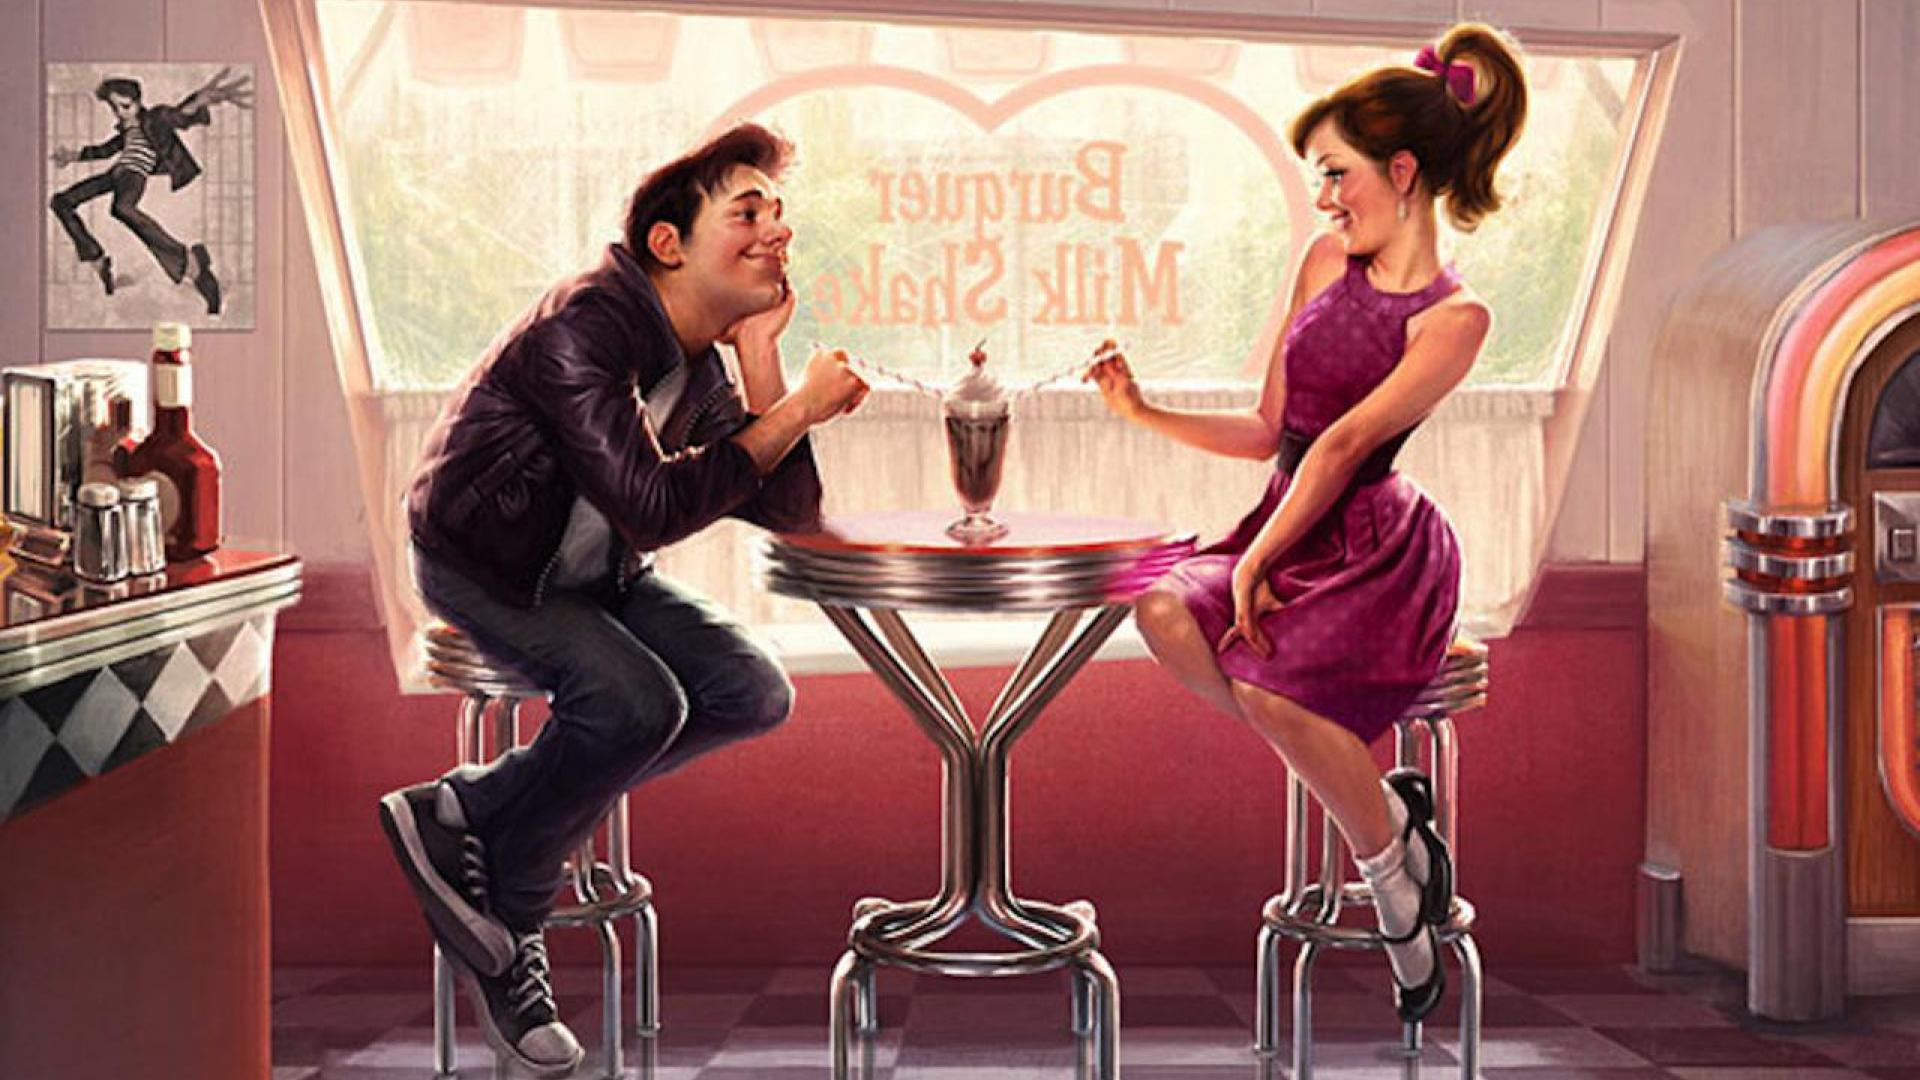 6 Things Women Keep Doing On Dates Even Though Men Hate Them Her Beauty